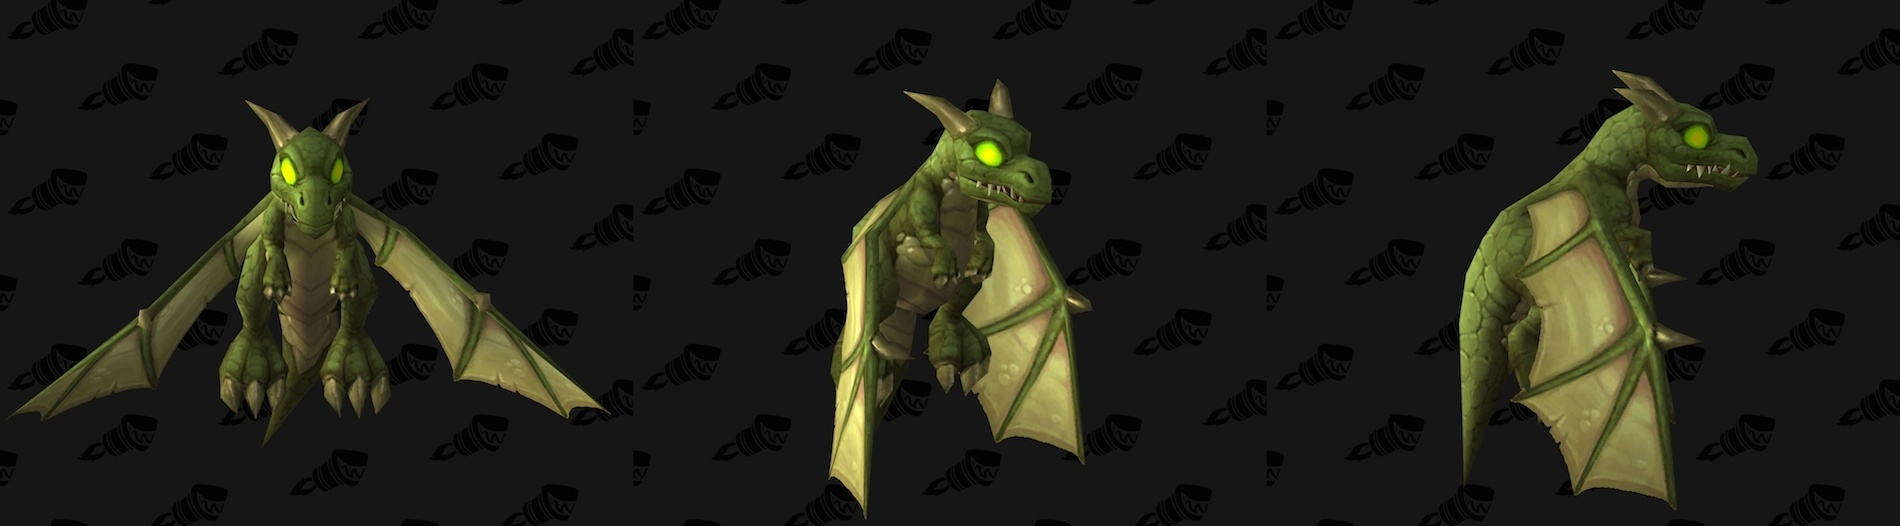 Death Knight Class Mount and Quest - Deathlord's Vilebrood